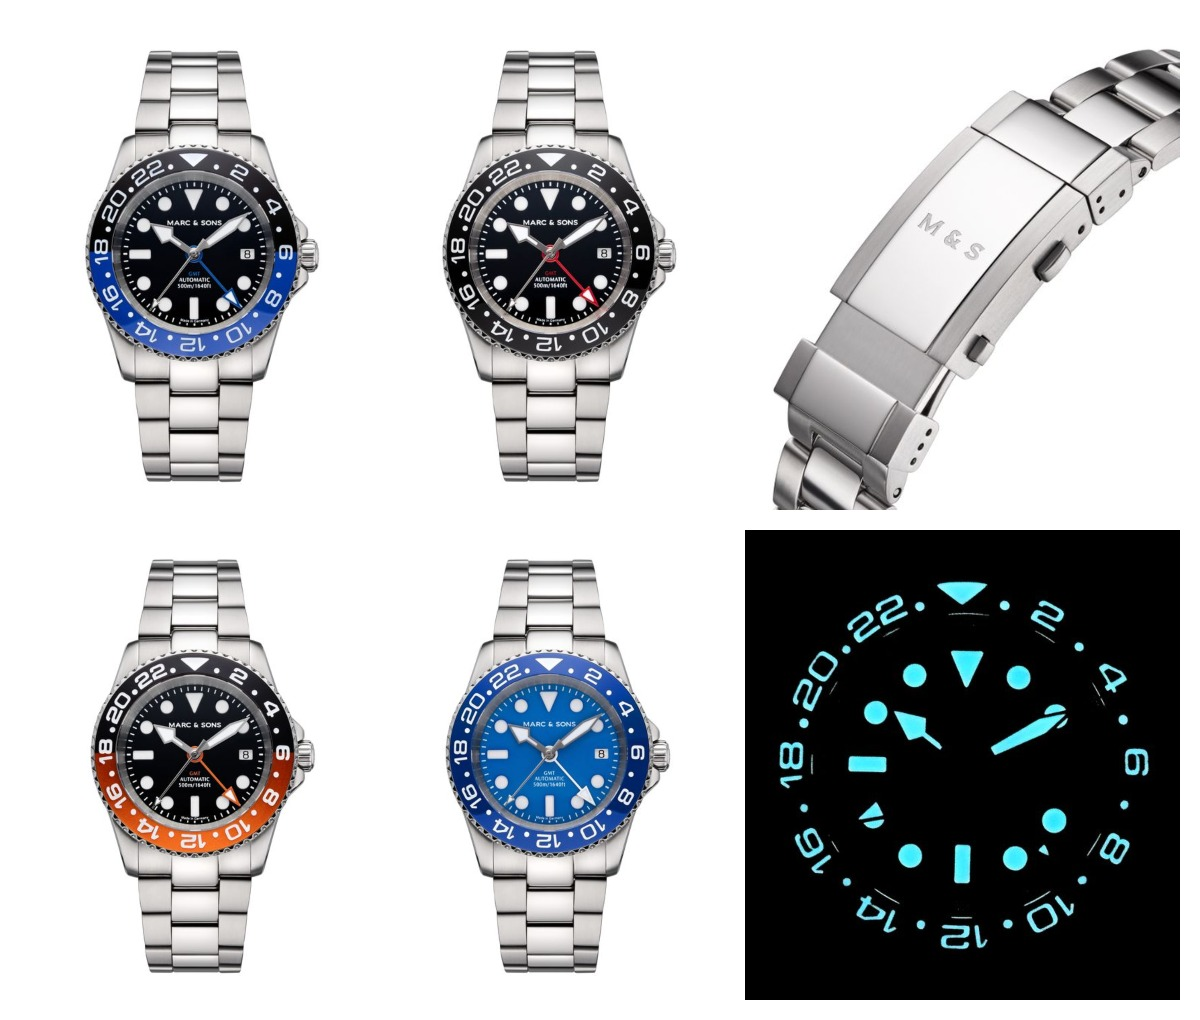 The Mark and Sons Diver watch Automatic GMT models MSG-007-1-OL-S (black-blue), MSG-007-3-OL-S (black), MSG-007-6-OL-S (black-orange) and MSG-007-4-OL-S (blue) Credits: Mark and sons